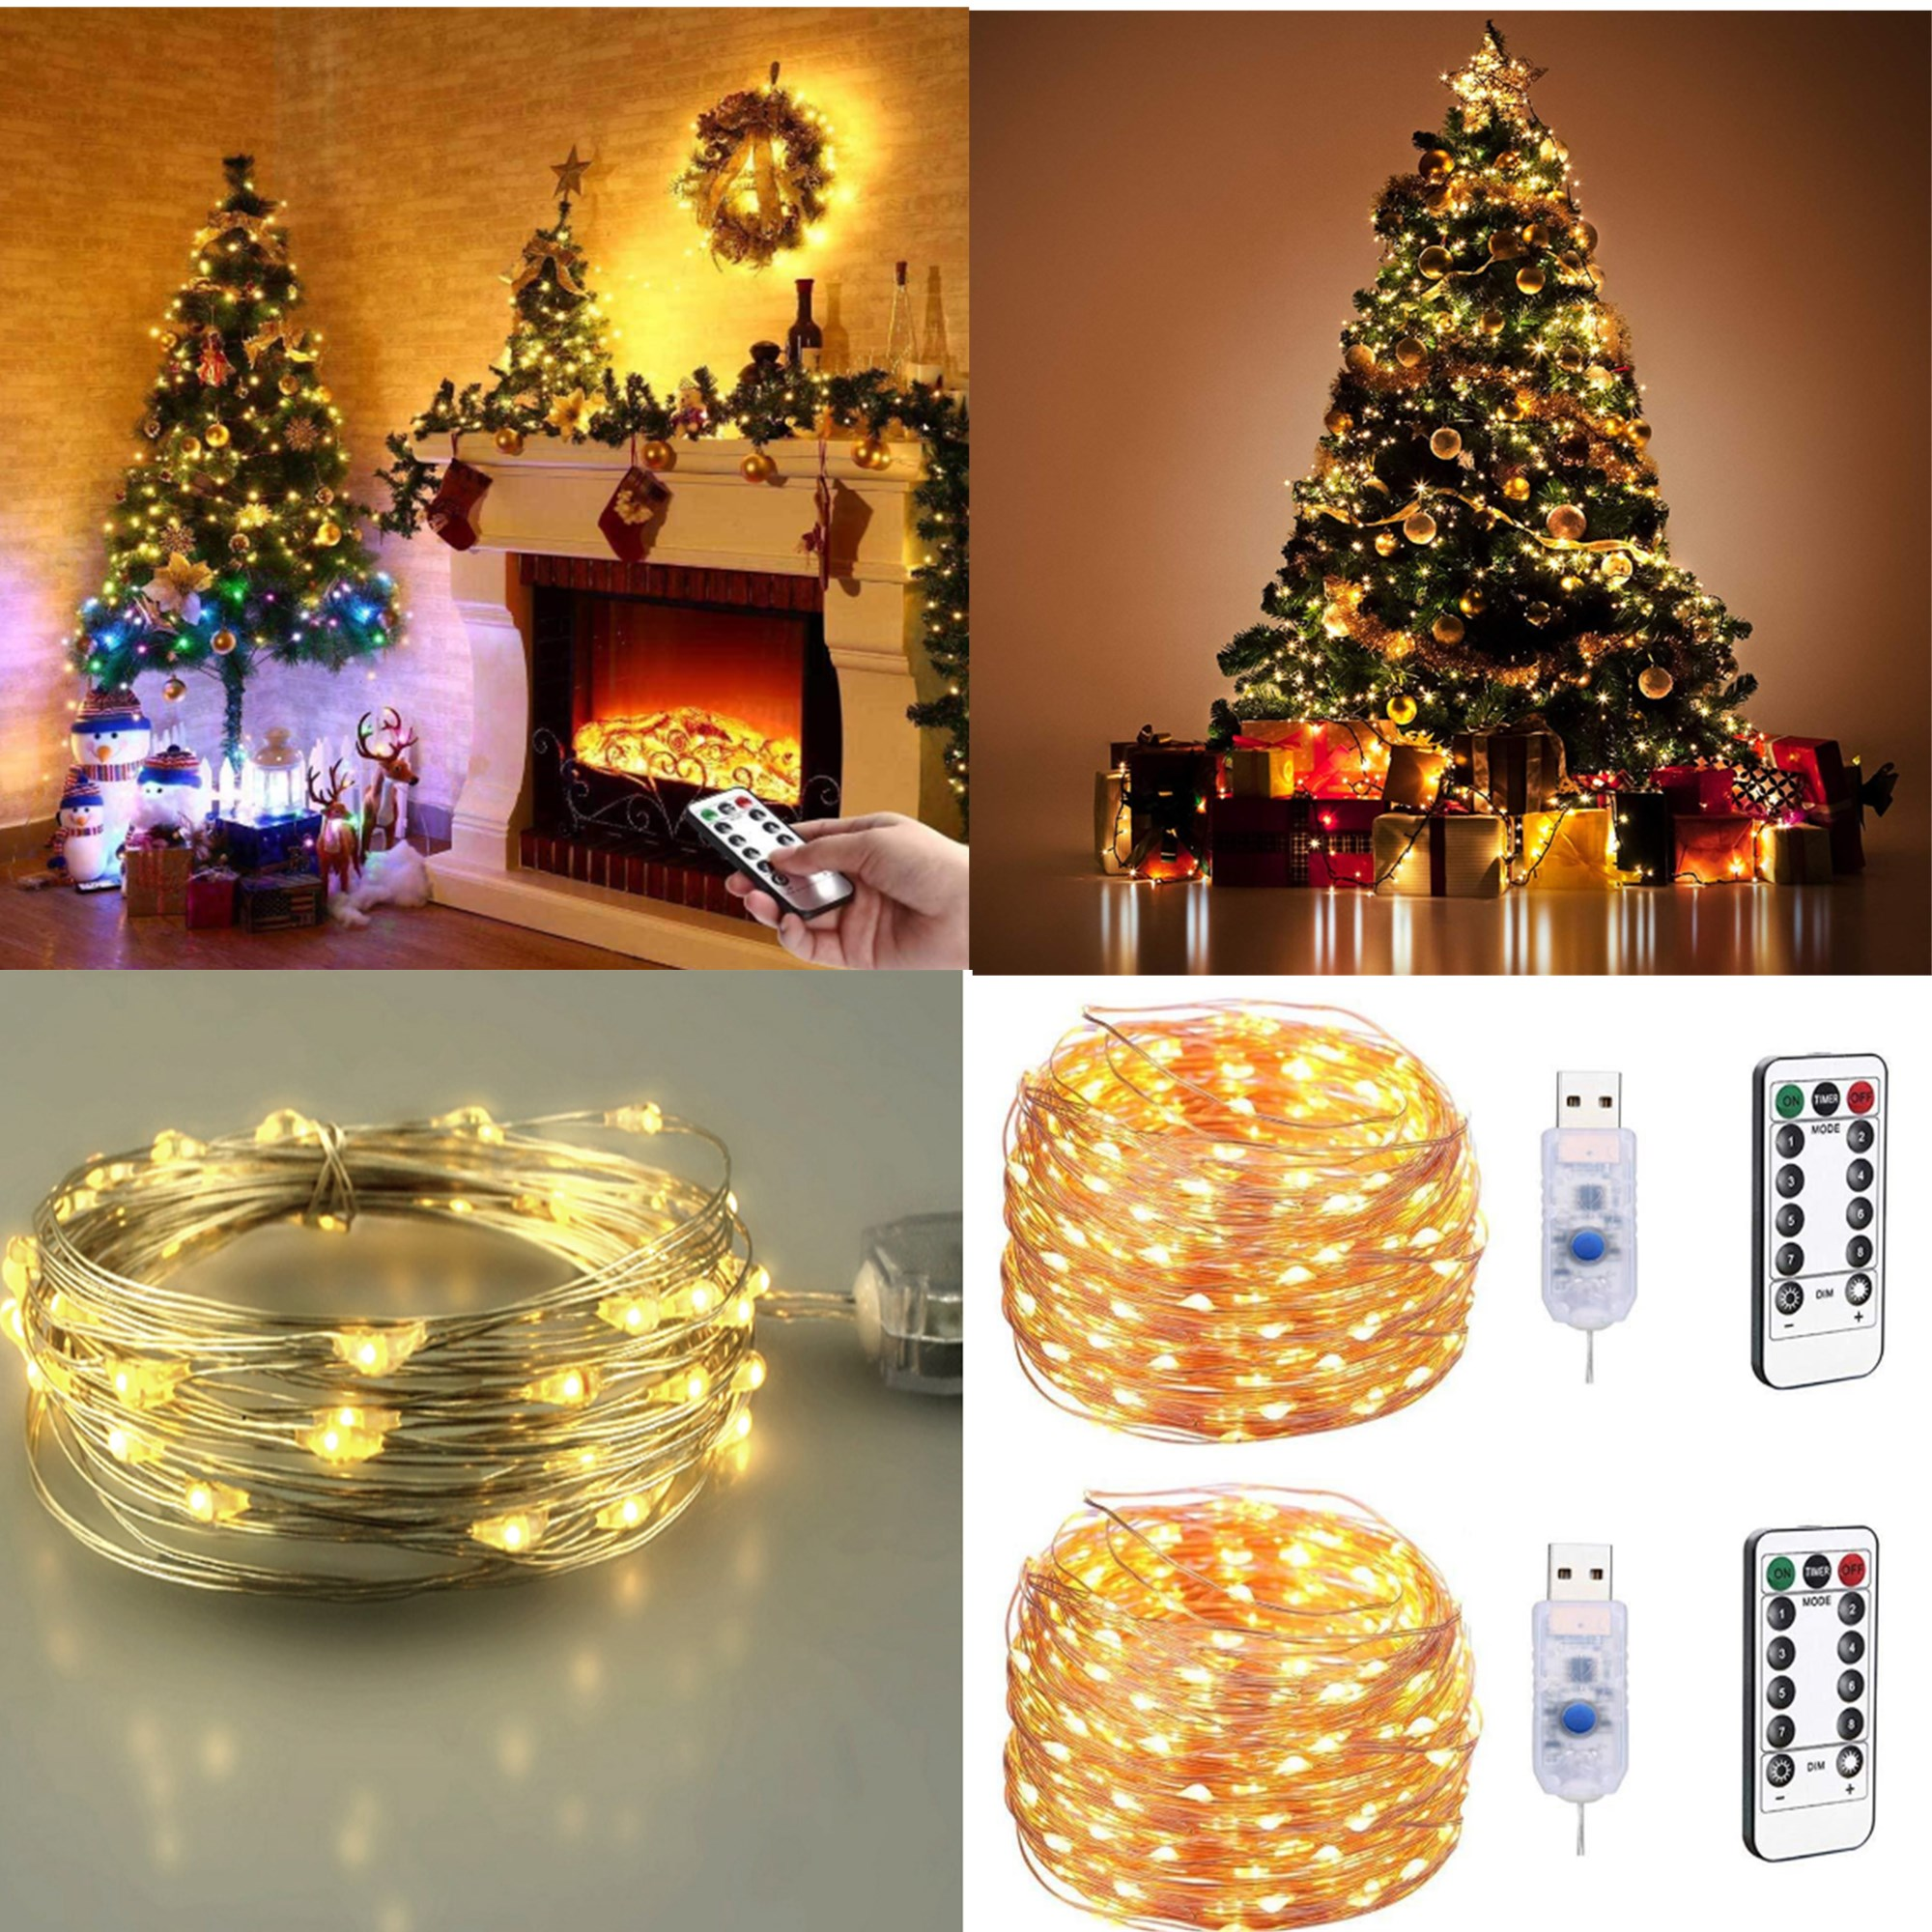 100 LED 50 FT Ball String Lights Fairy Plug In W Remote Control Decor For Indoor